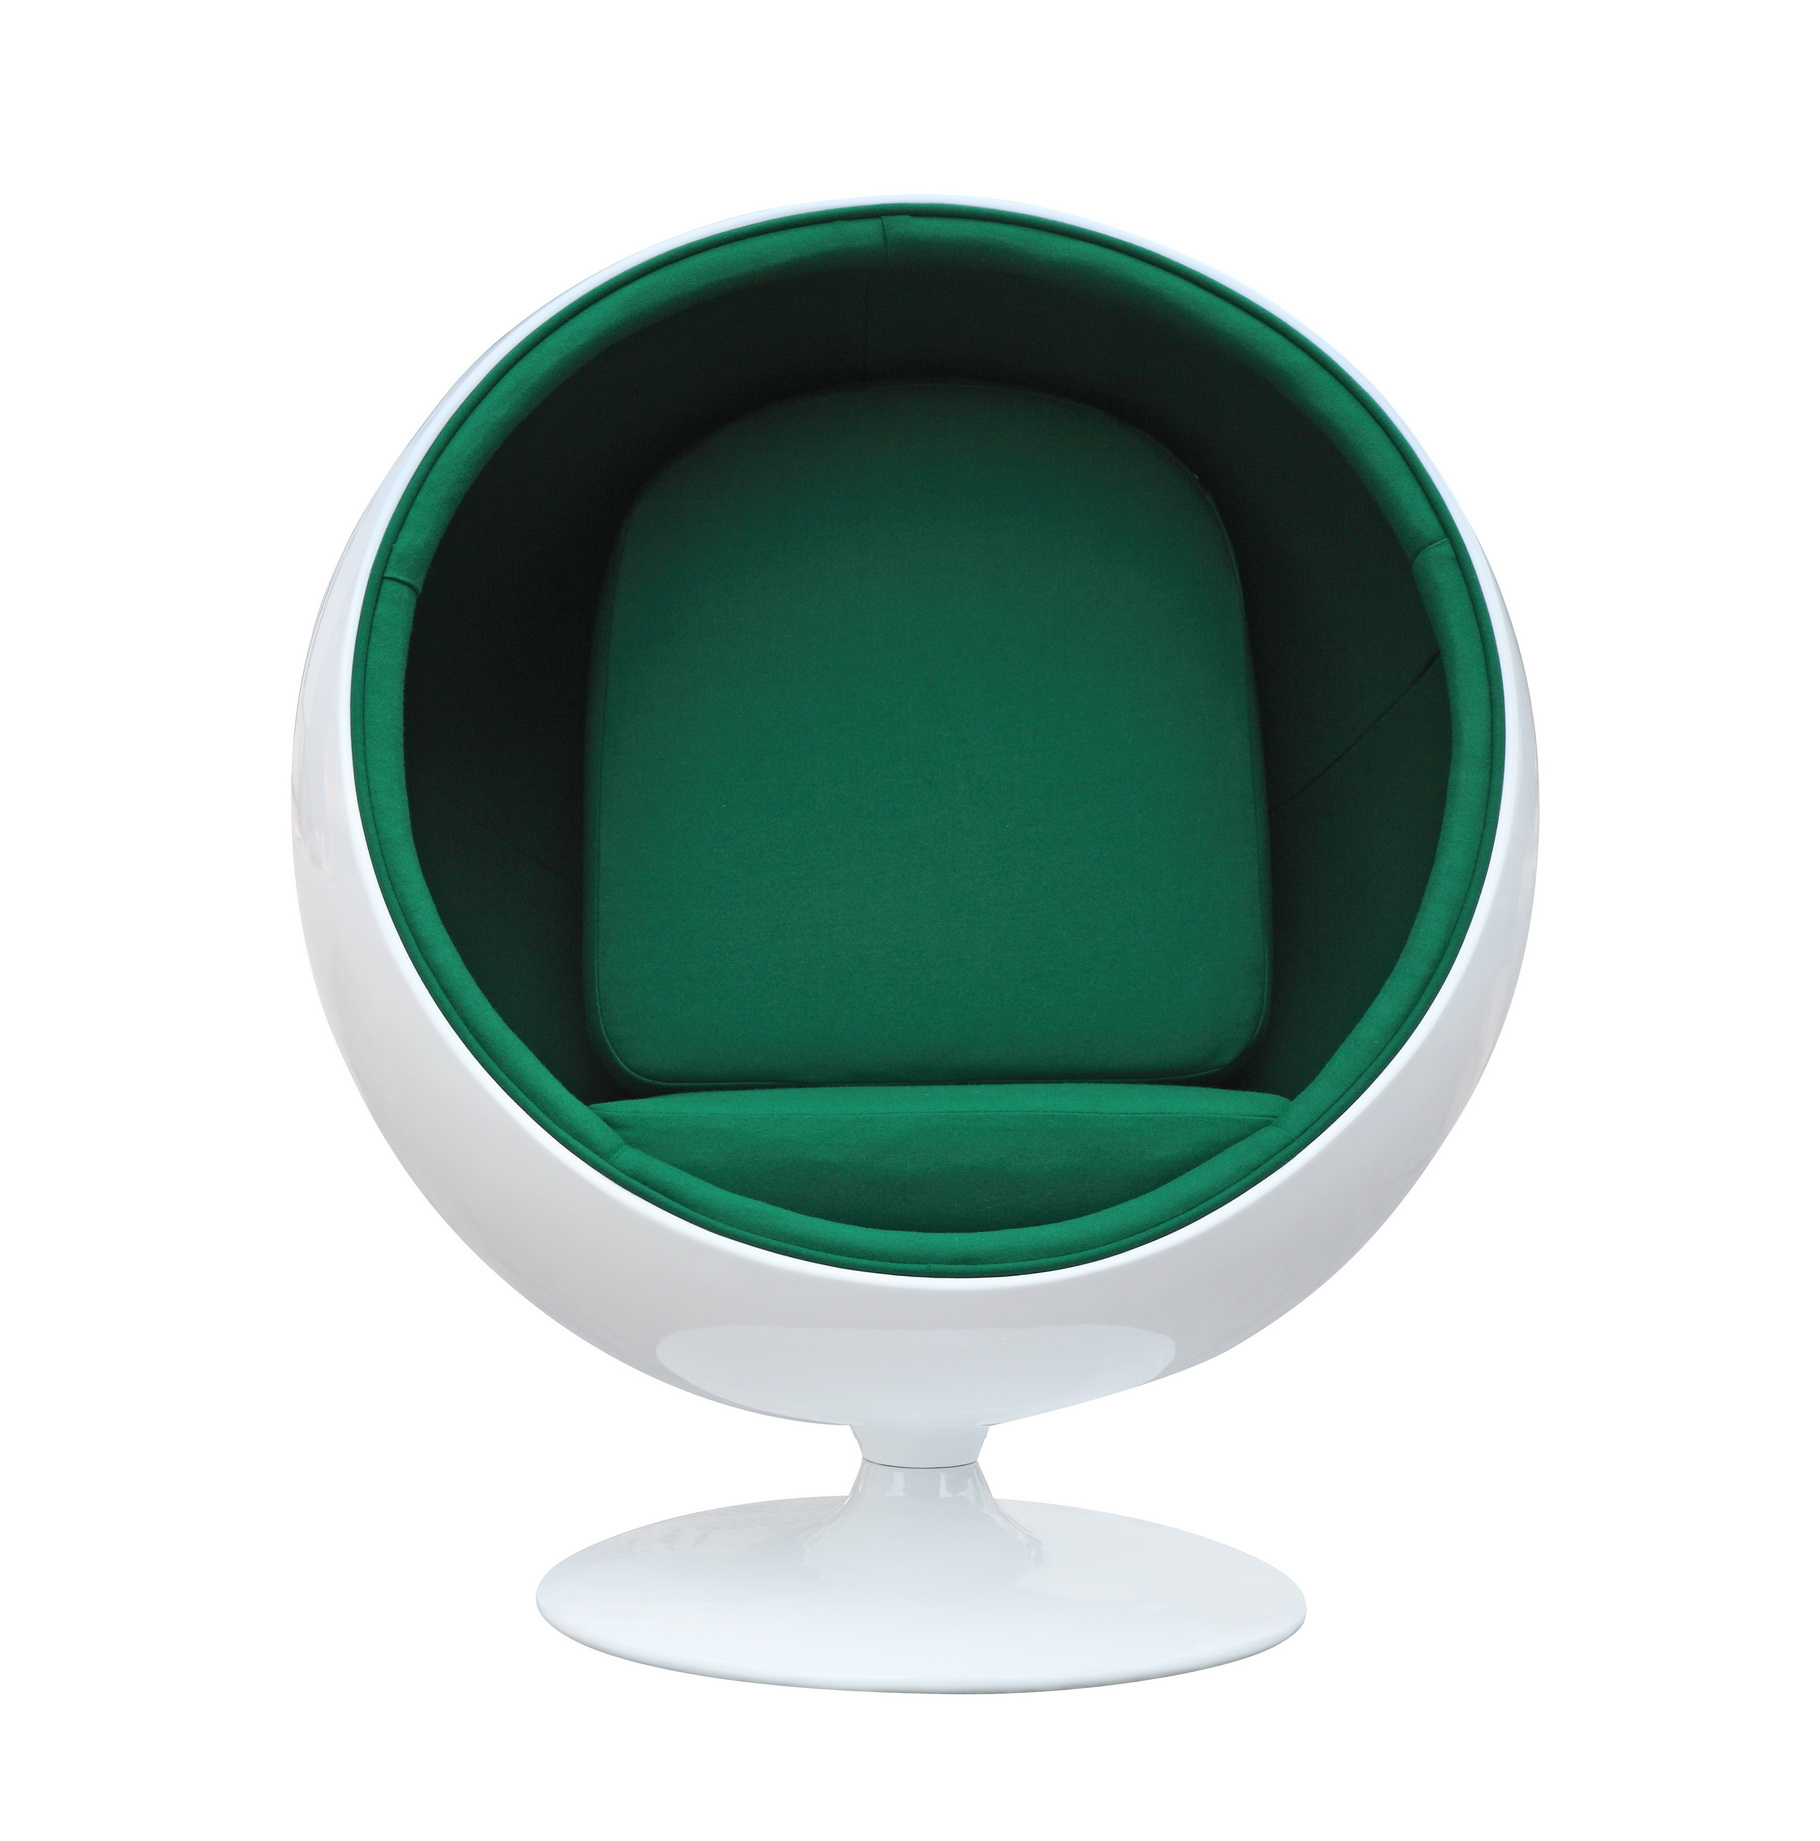 ball aarnio home chairs eero chair reproduction pinterest pin